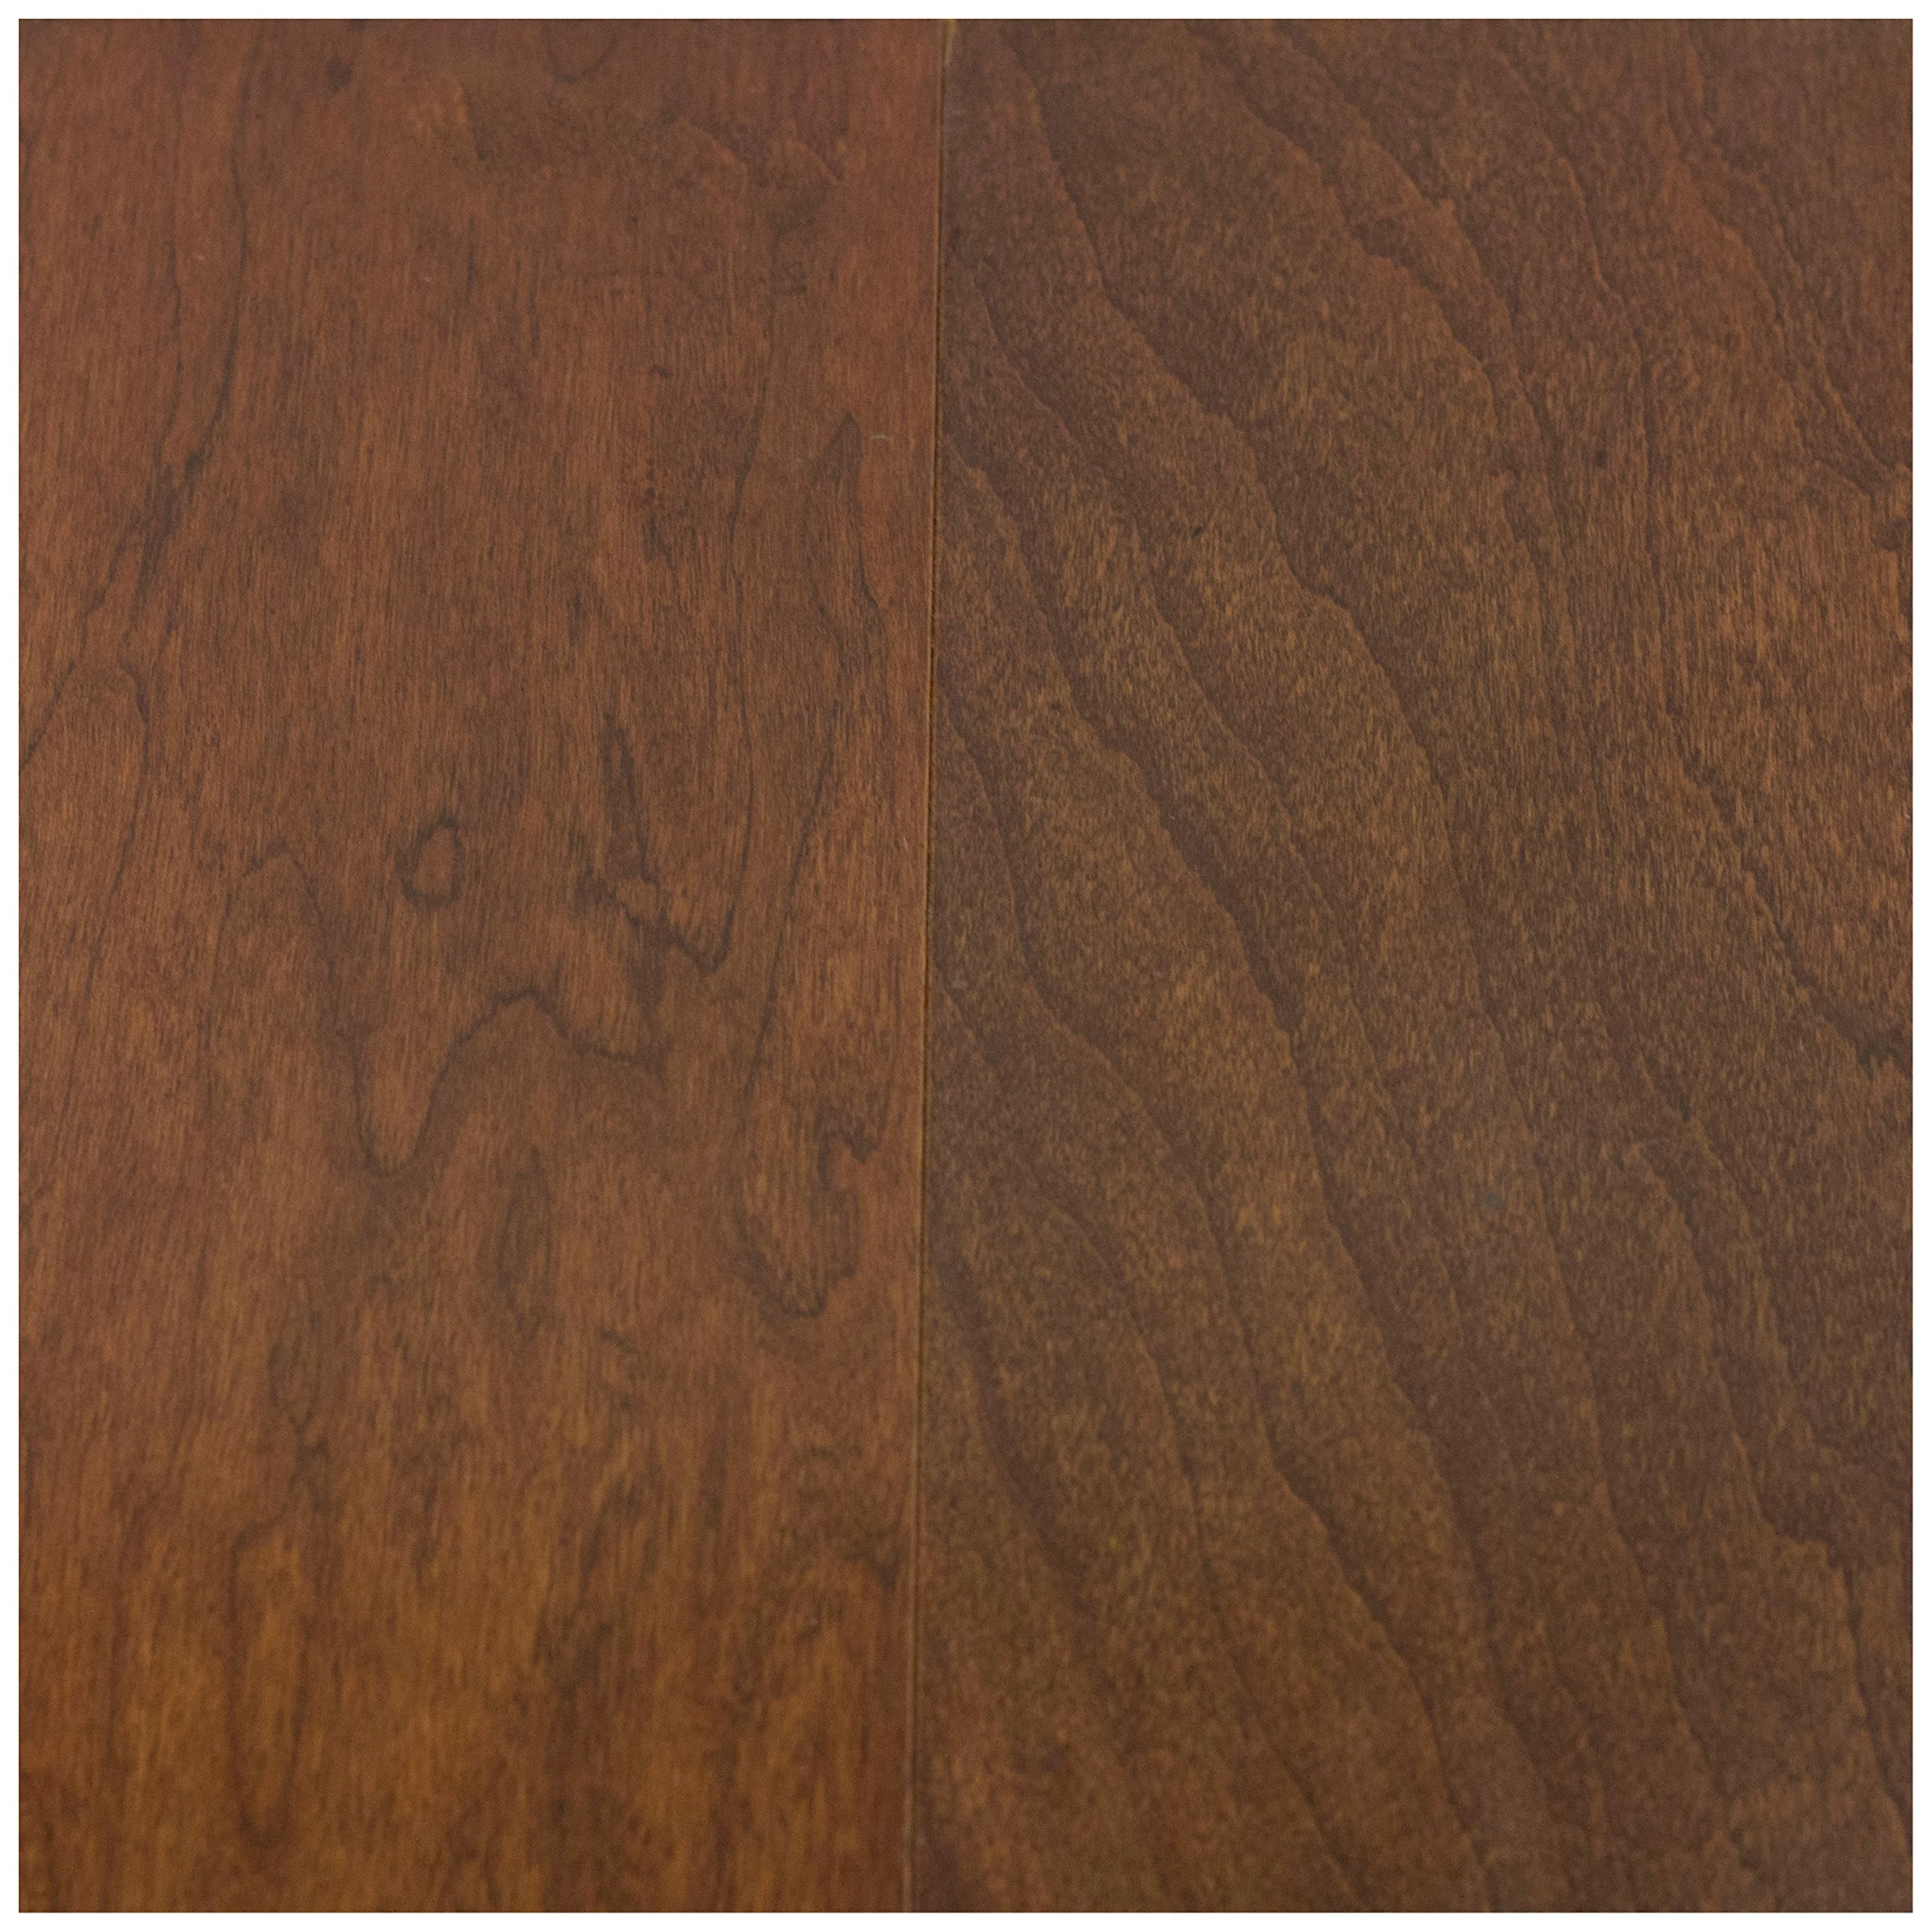 Moldings Online 2164196003 96''x 0.44''x 3.5'' Mannington Chestnut Collection: Caspian Lock and Go Collection Cherry Wall Base, Length: 96'' by Moldings Online (Image #2)